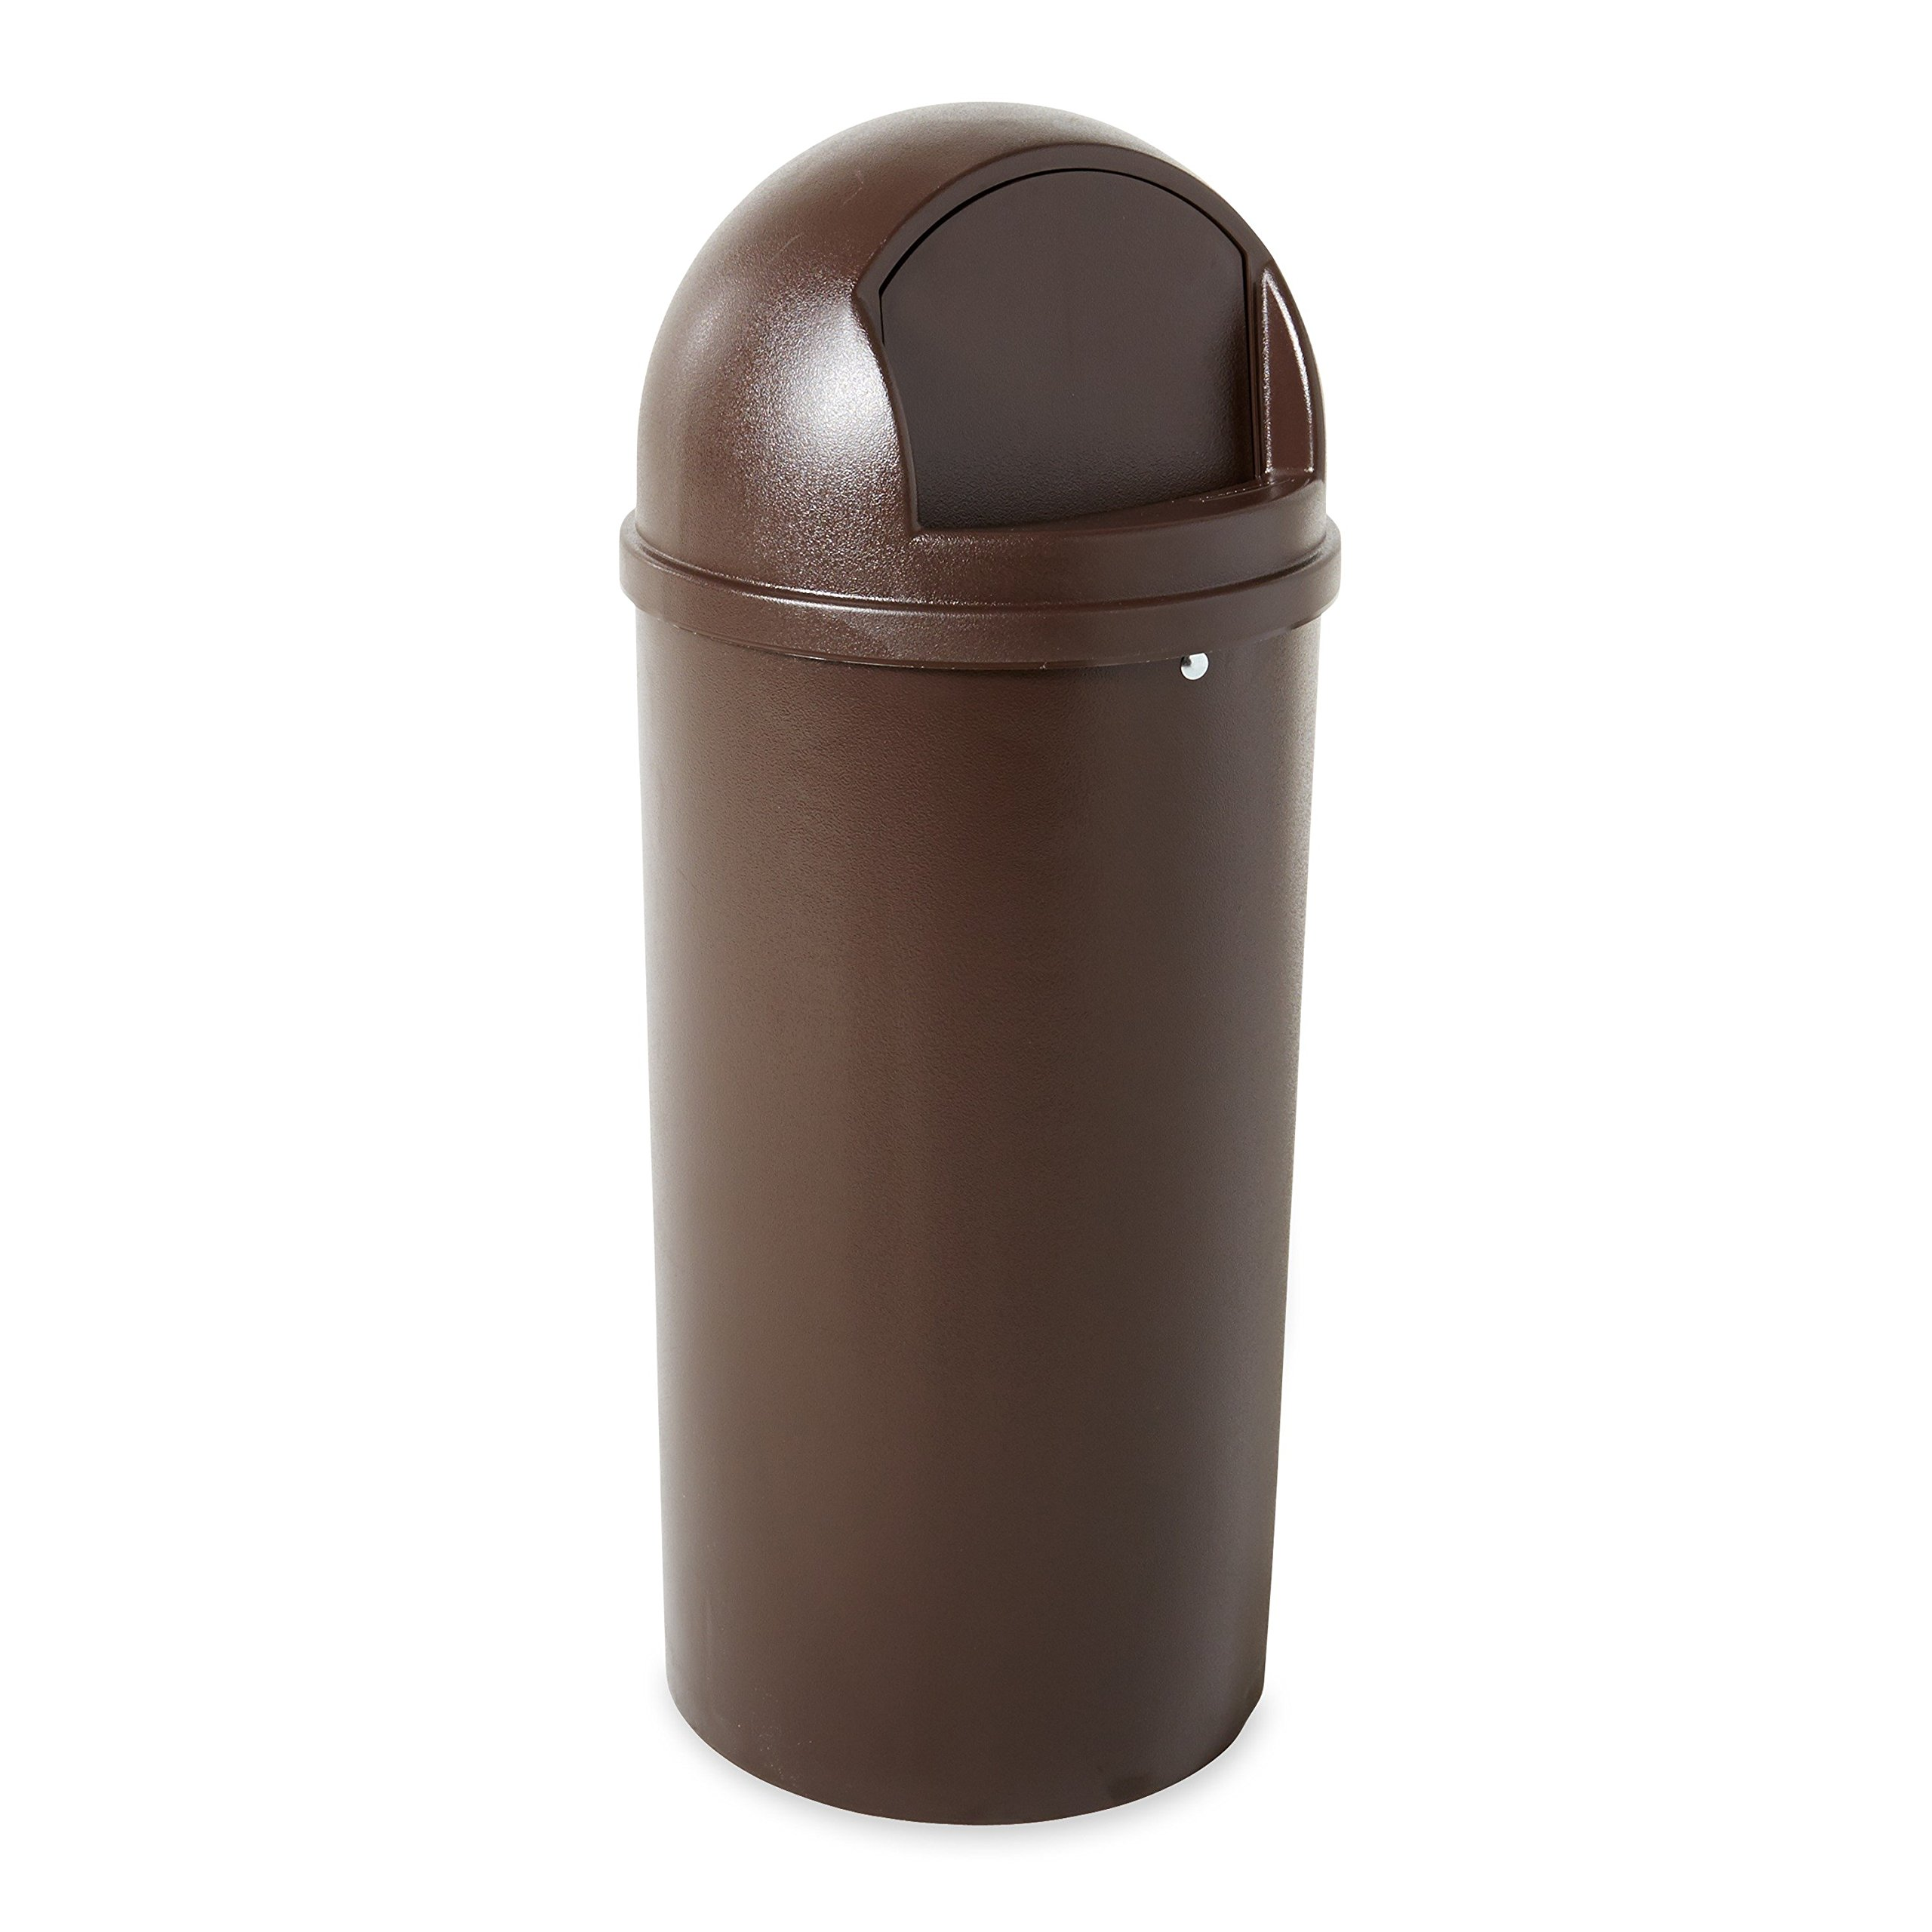 Rubbermaid Commercial Products FG816088BRN Marshal Classic Containers (Brown,15-Gallon)